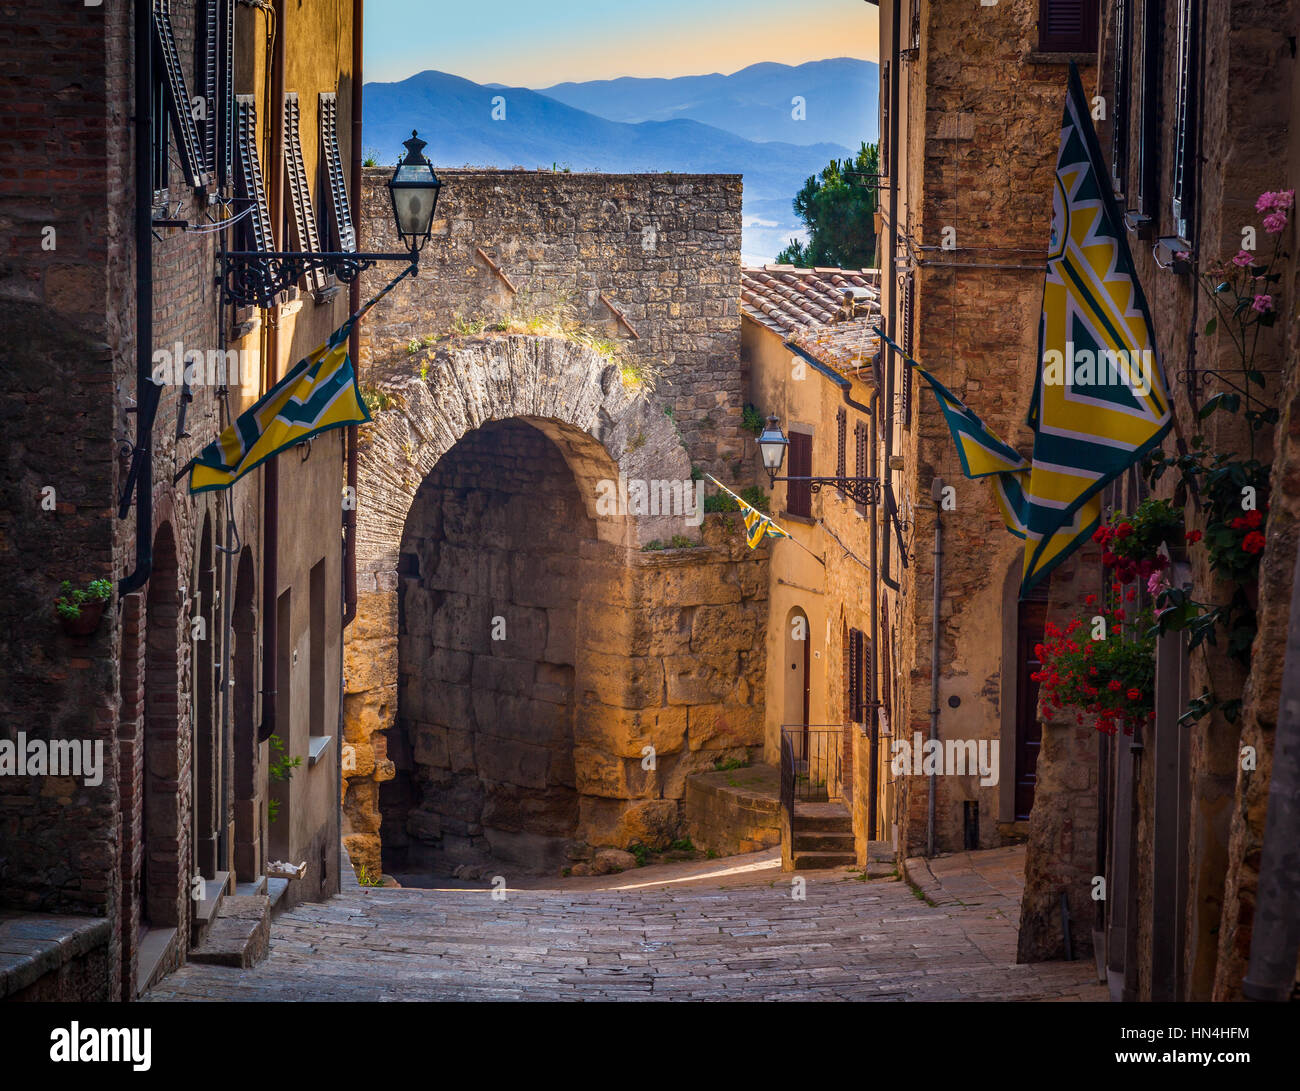 Volterra, known to the ancient Etruscans as Velathri, to the Romans as Volaterrae, is a town and comune in the Tuscany - Stock Image